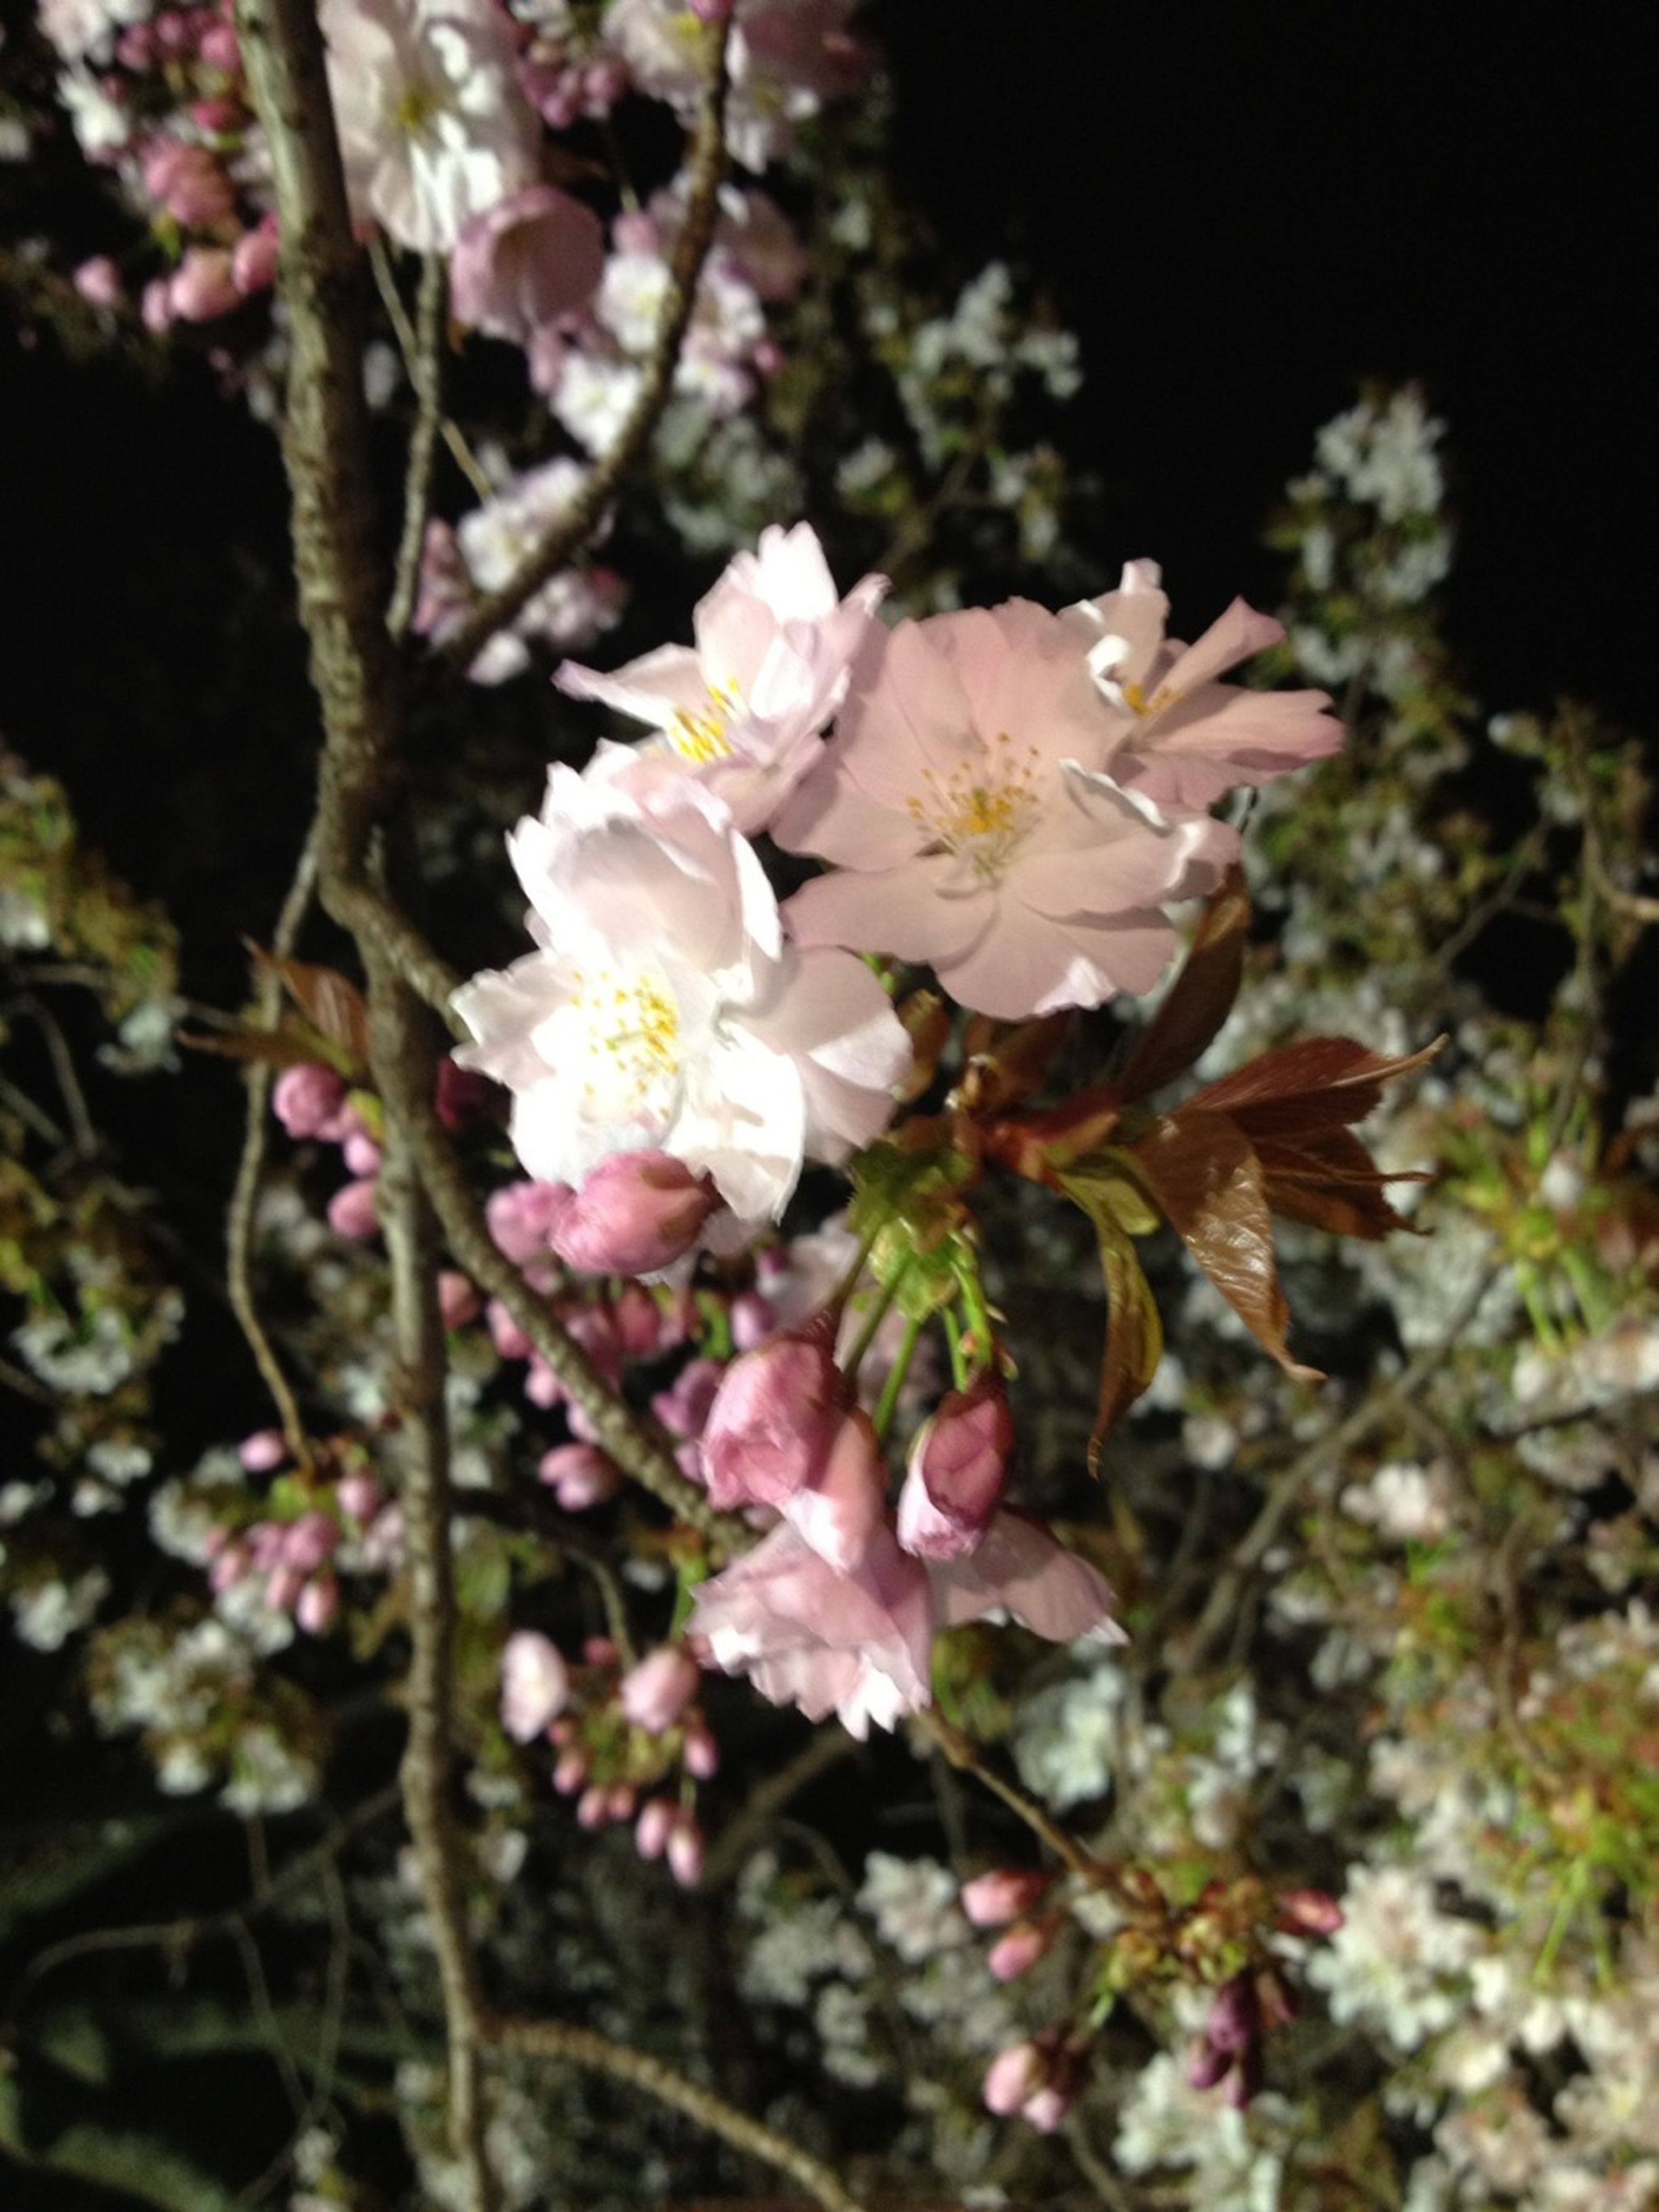 flower, growth, freshness, fragility, beauty in nature, tree, nature, branch, petal, focus on foreground, close-up, blossom, cherry blossom, blooming, selective focus, in bloom, white color, pink color, outdoors, cherry tree